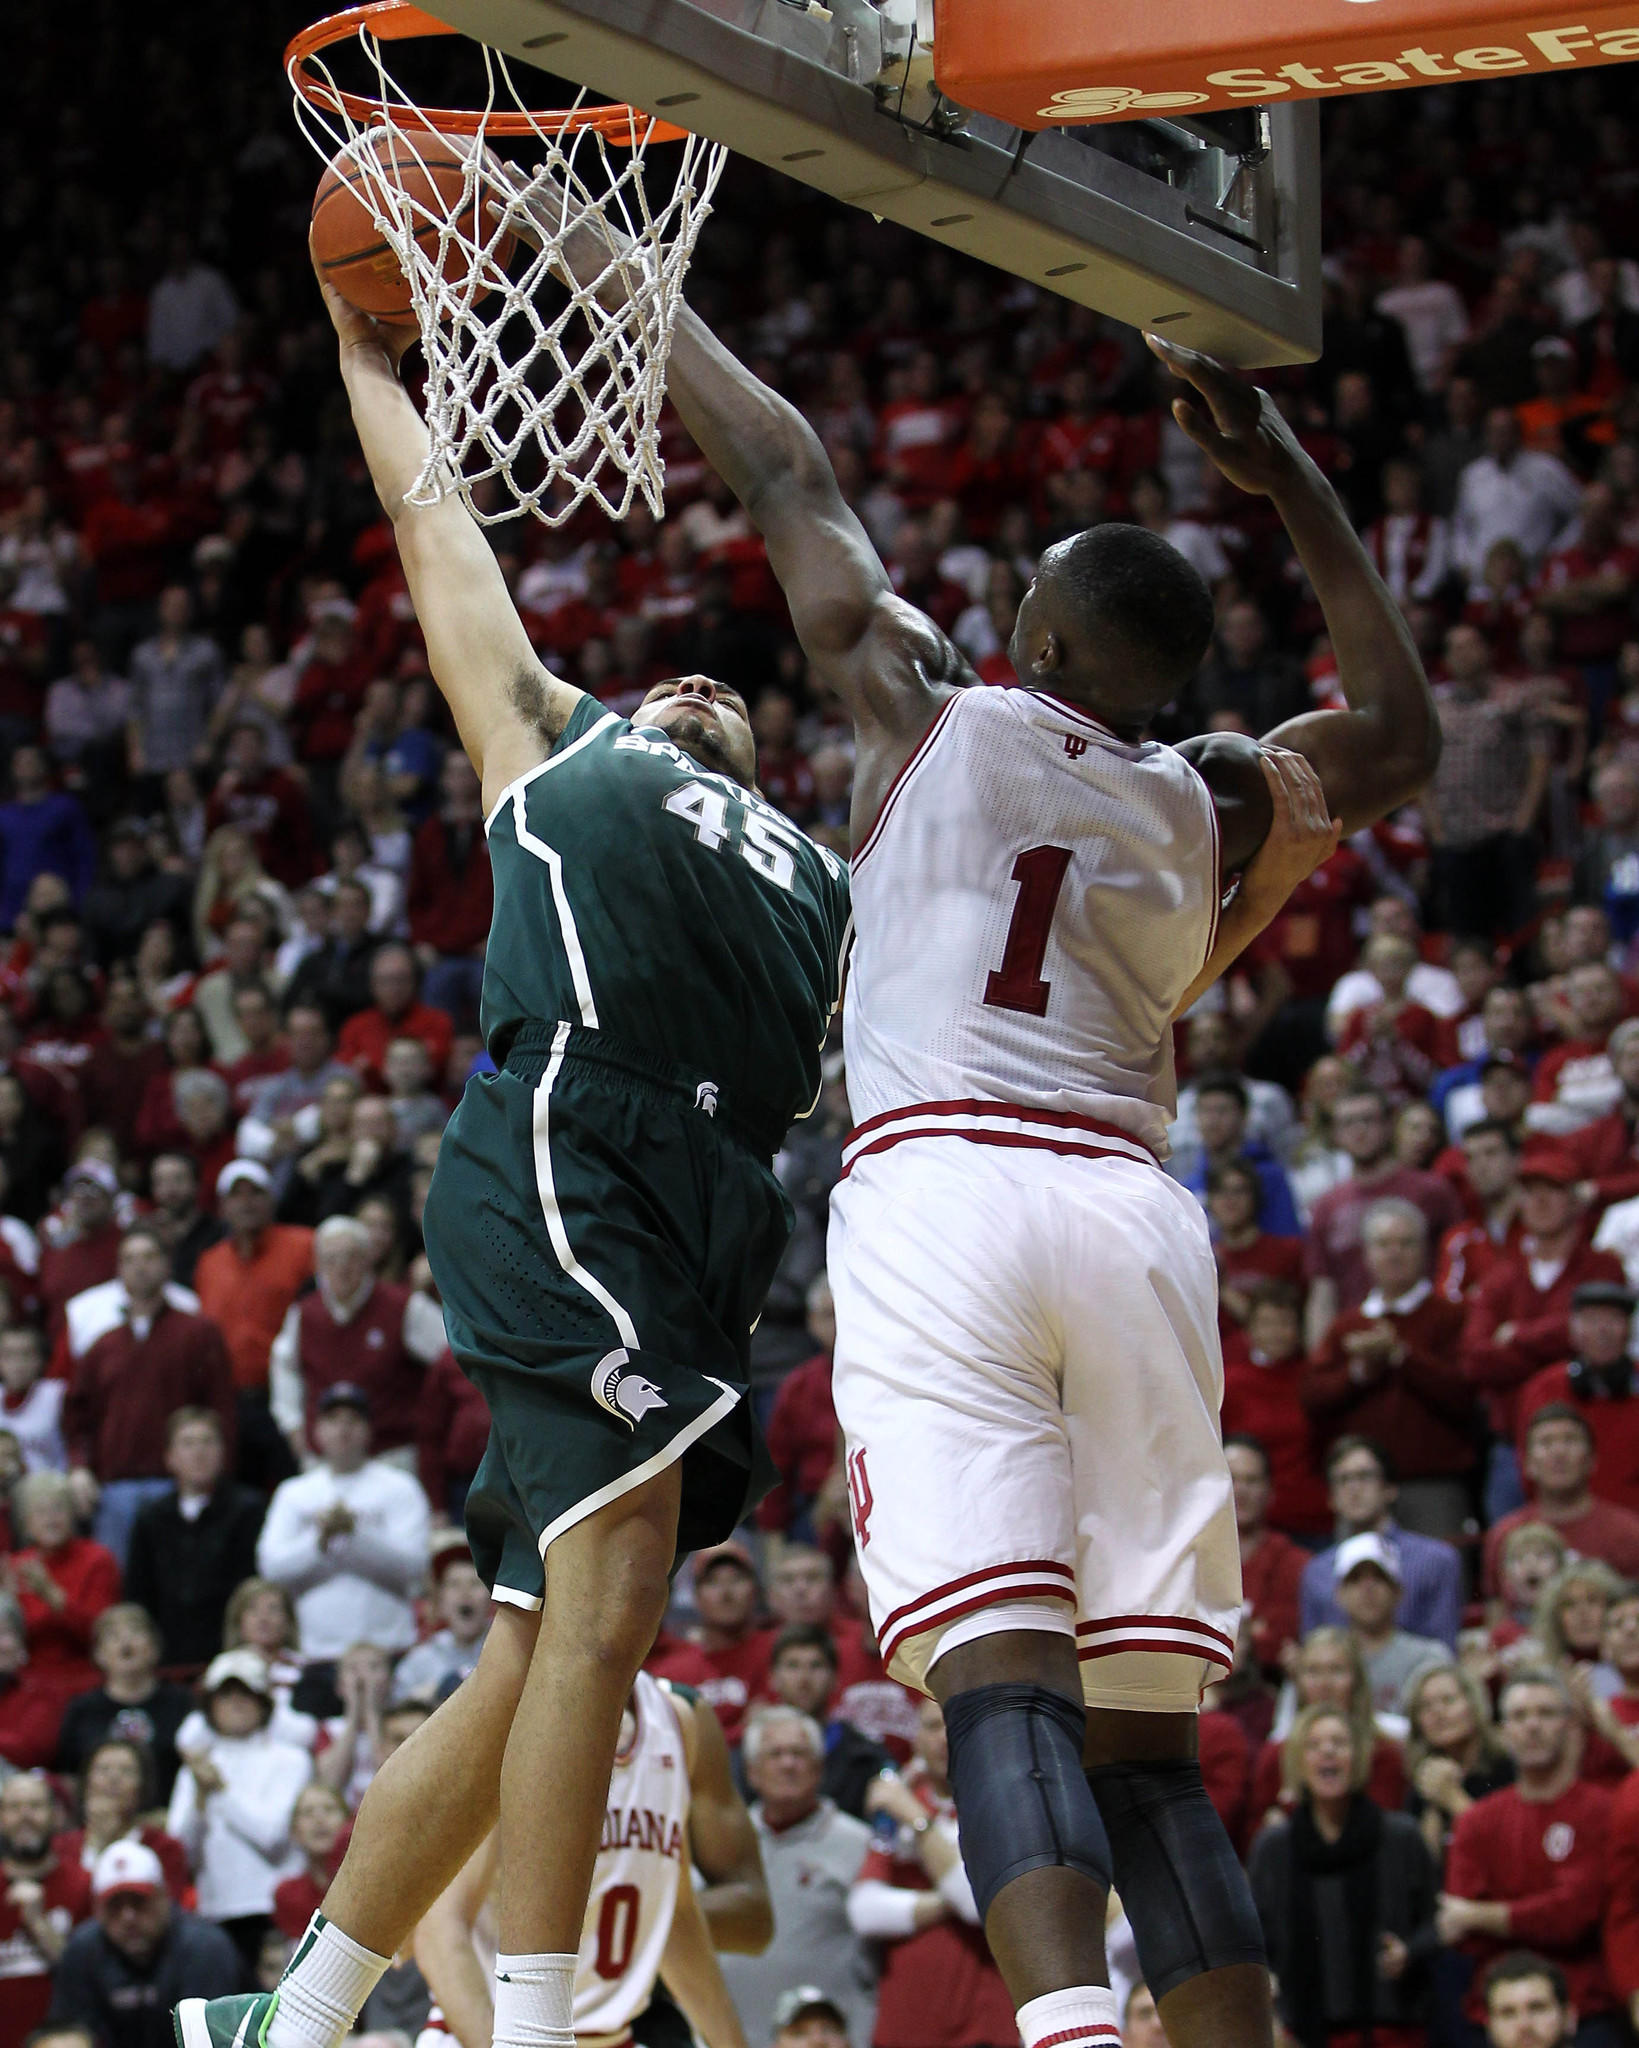 Michigan State's Denzel Valentine drives to the basket with Indiana's Noah Vonleh defending during the second half at Assembly Hall.